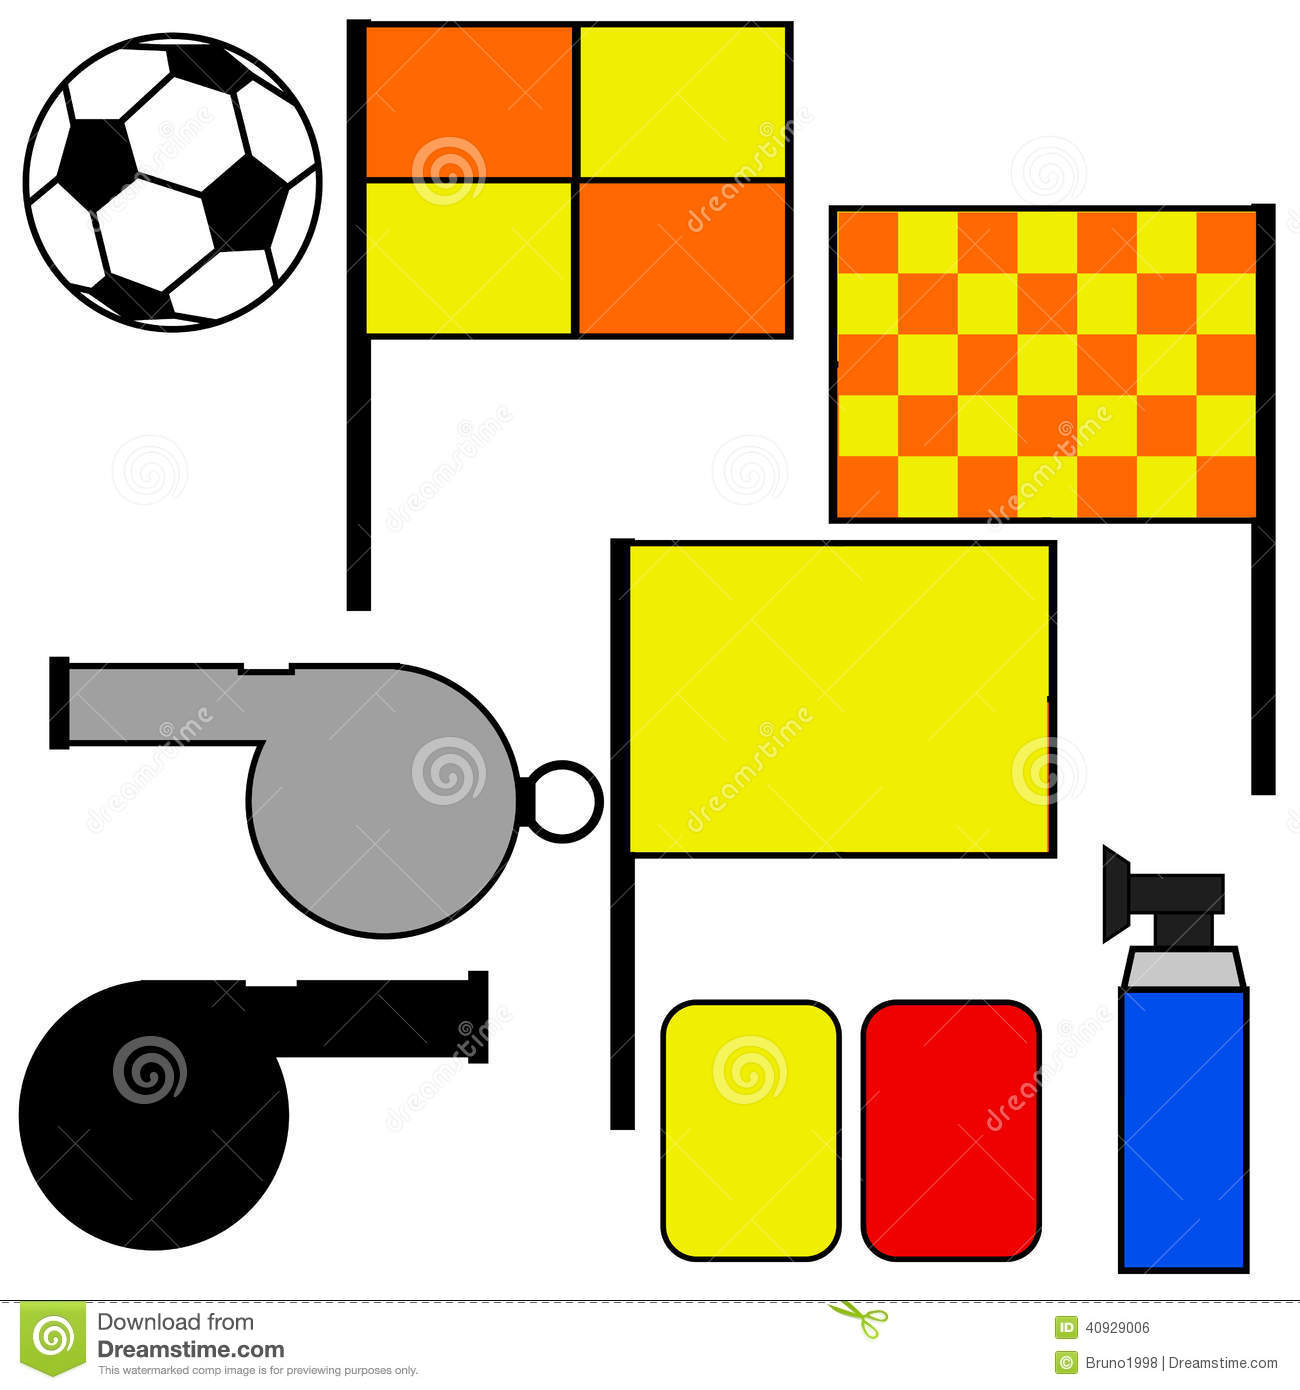 soccer referee tools cartoon illustration showing commonly used referees 40929006